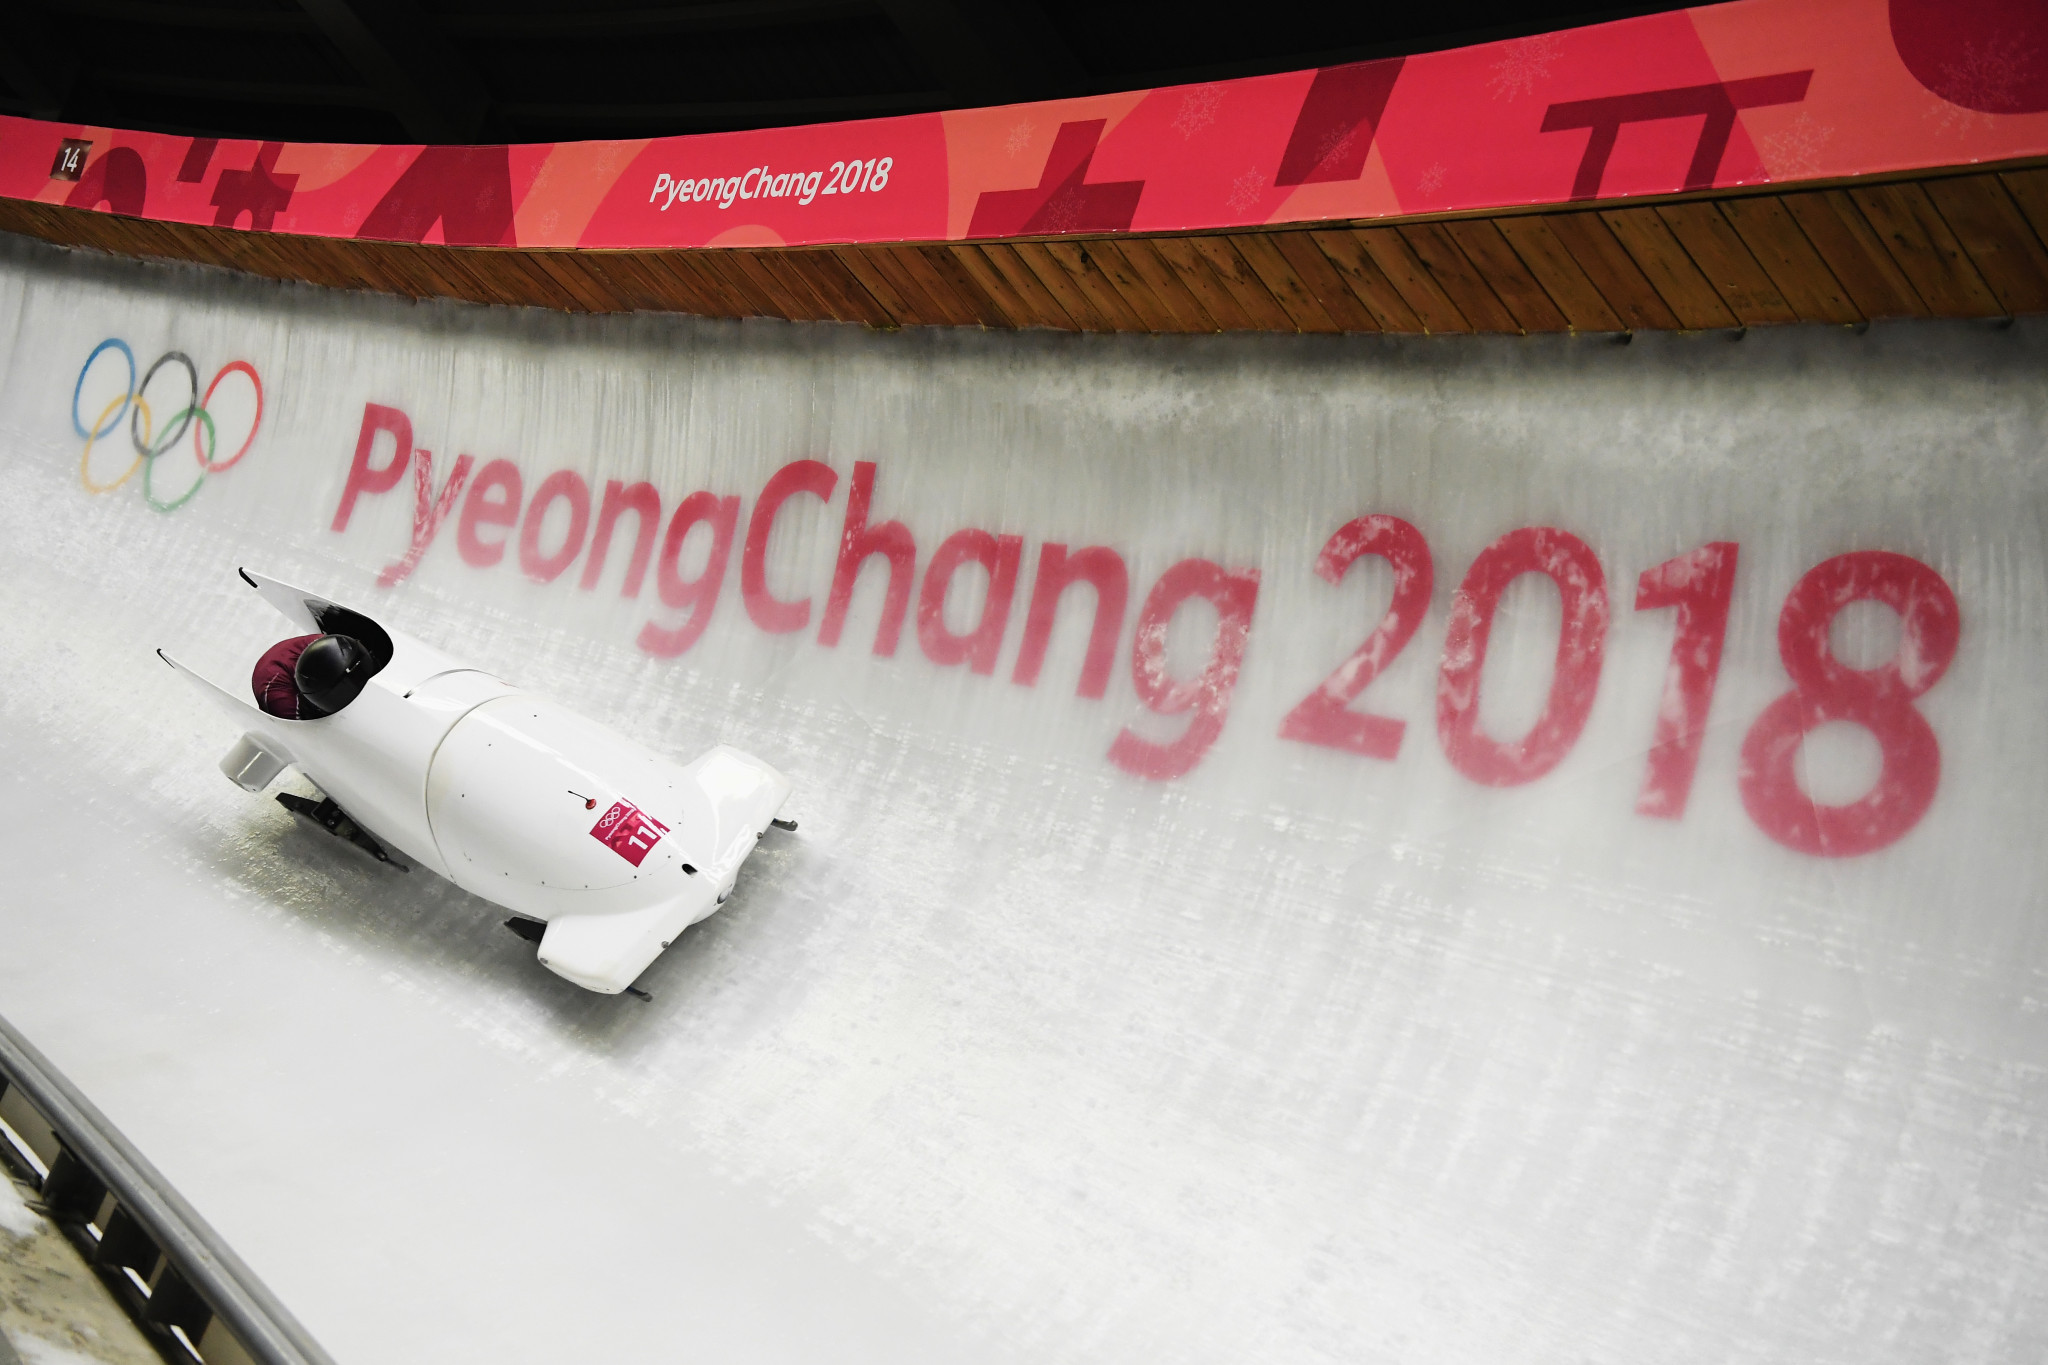 Russia's Nadezhda Sergeeva and partner Anastasia Kocherzhova finished 12th in the two-woman bob at Pyeongchang 2018 but now face disqualification following the former's positive drugs test ©Getty Images